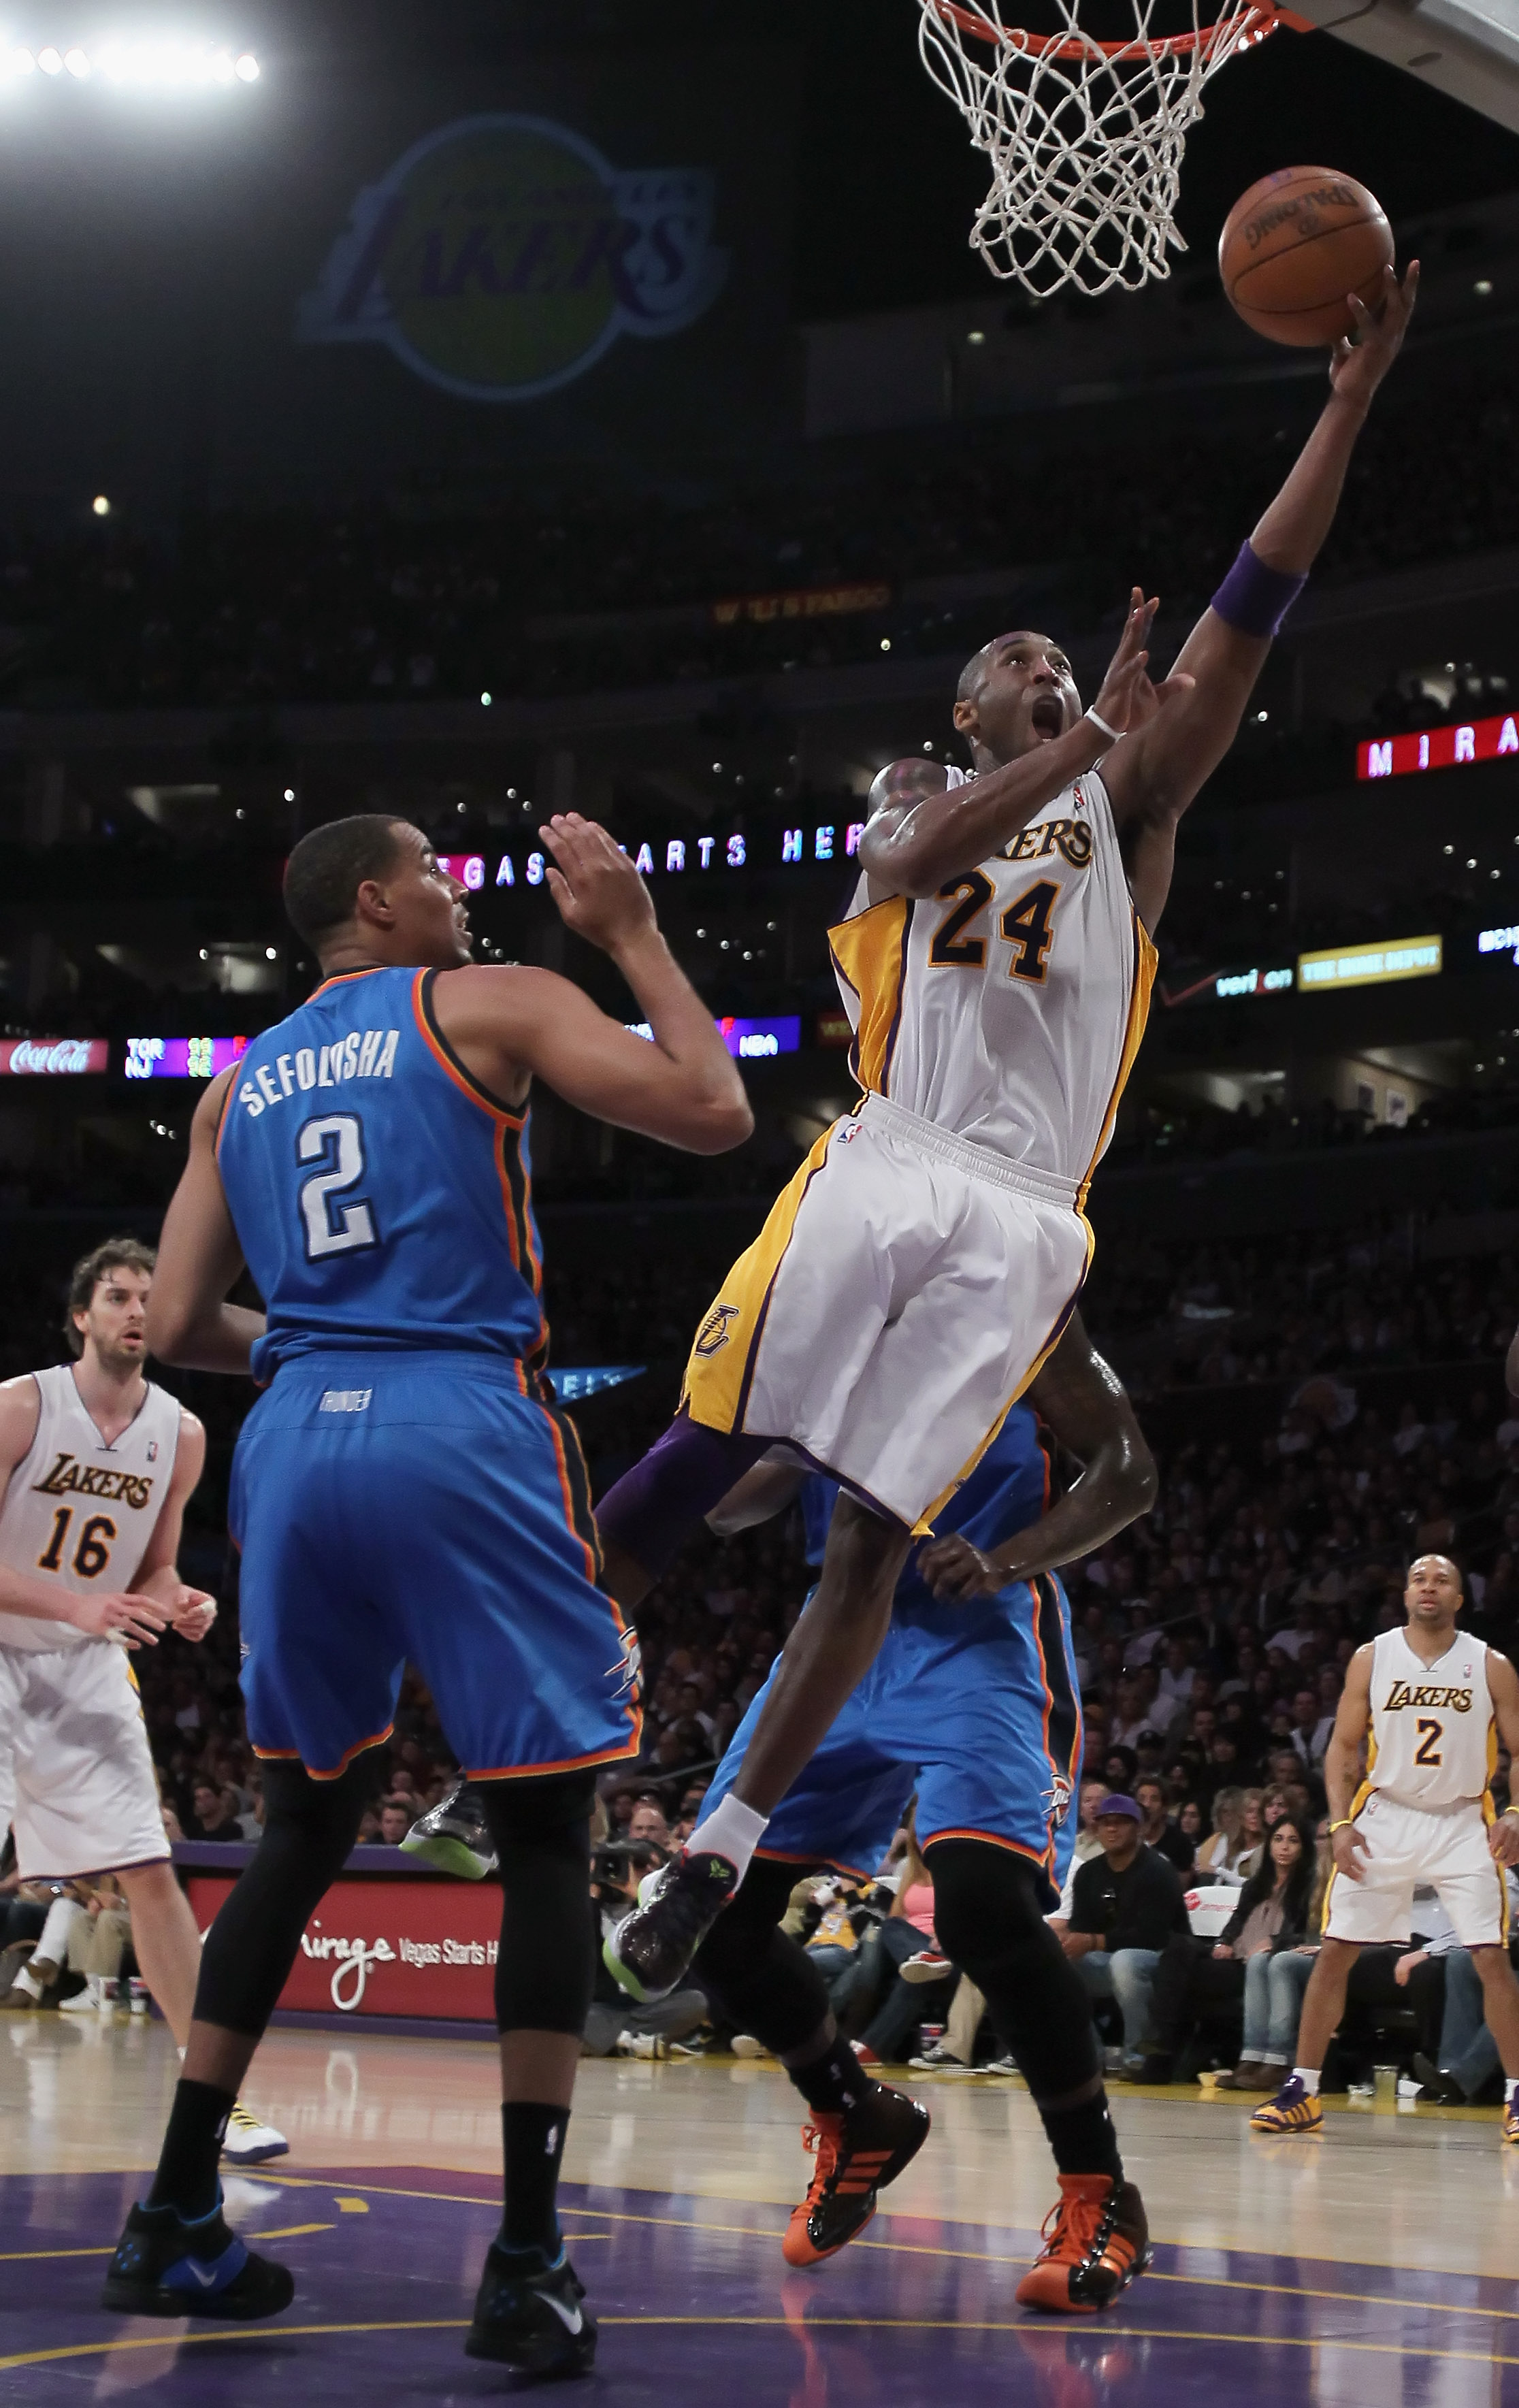 LOS ANGELES, CA - APRIL 10:  Kobe Bryant #24 of the Los Angeles Lakers drives to the basket past Thabo Sefolosha #2 of the Oklahoma City Thunder in the first half at Staples Center on April 10, 2011 in Los Angeles, California. NOTE TO USER: User expressly